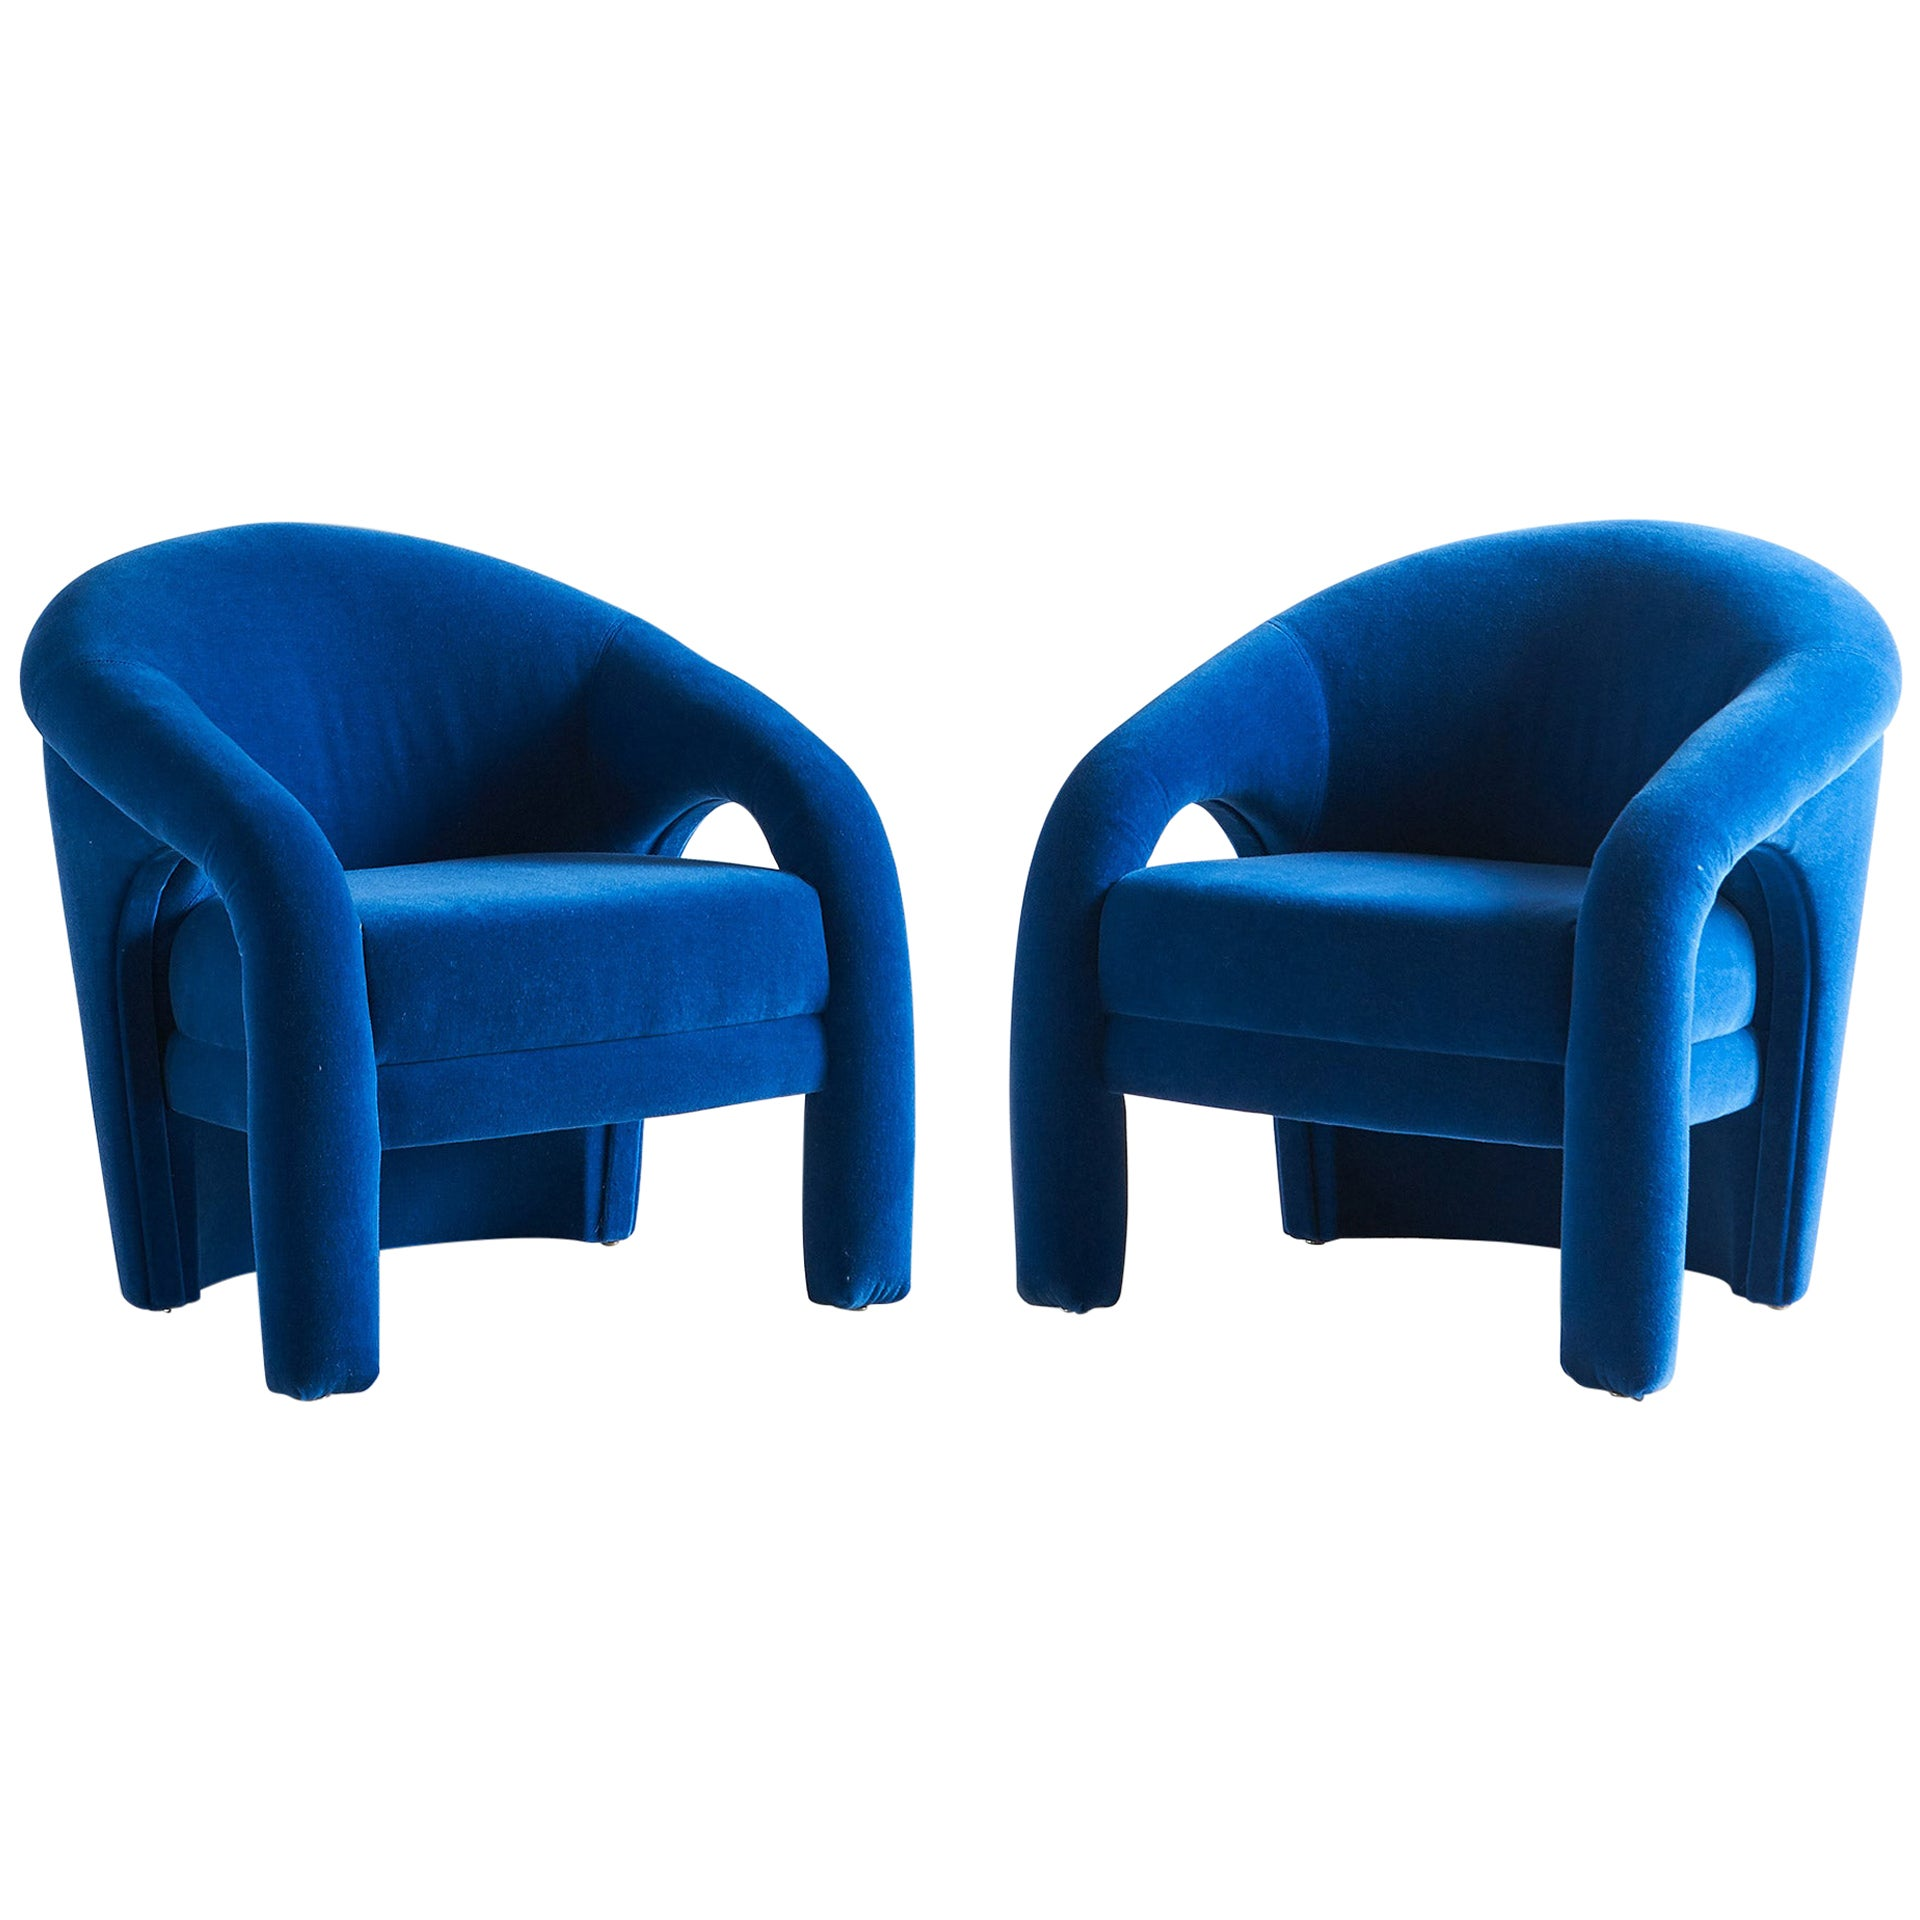 Pair of Sculptural Lounge Chairs in the Style of Vladimir Kagan